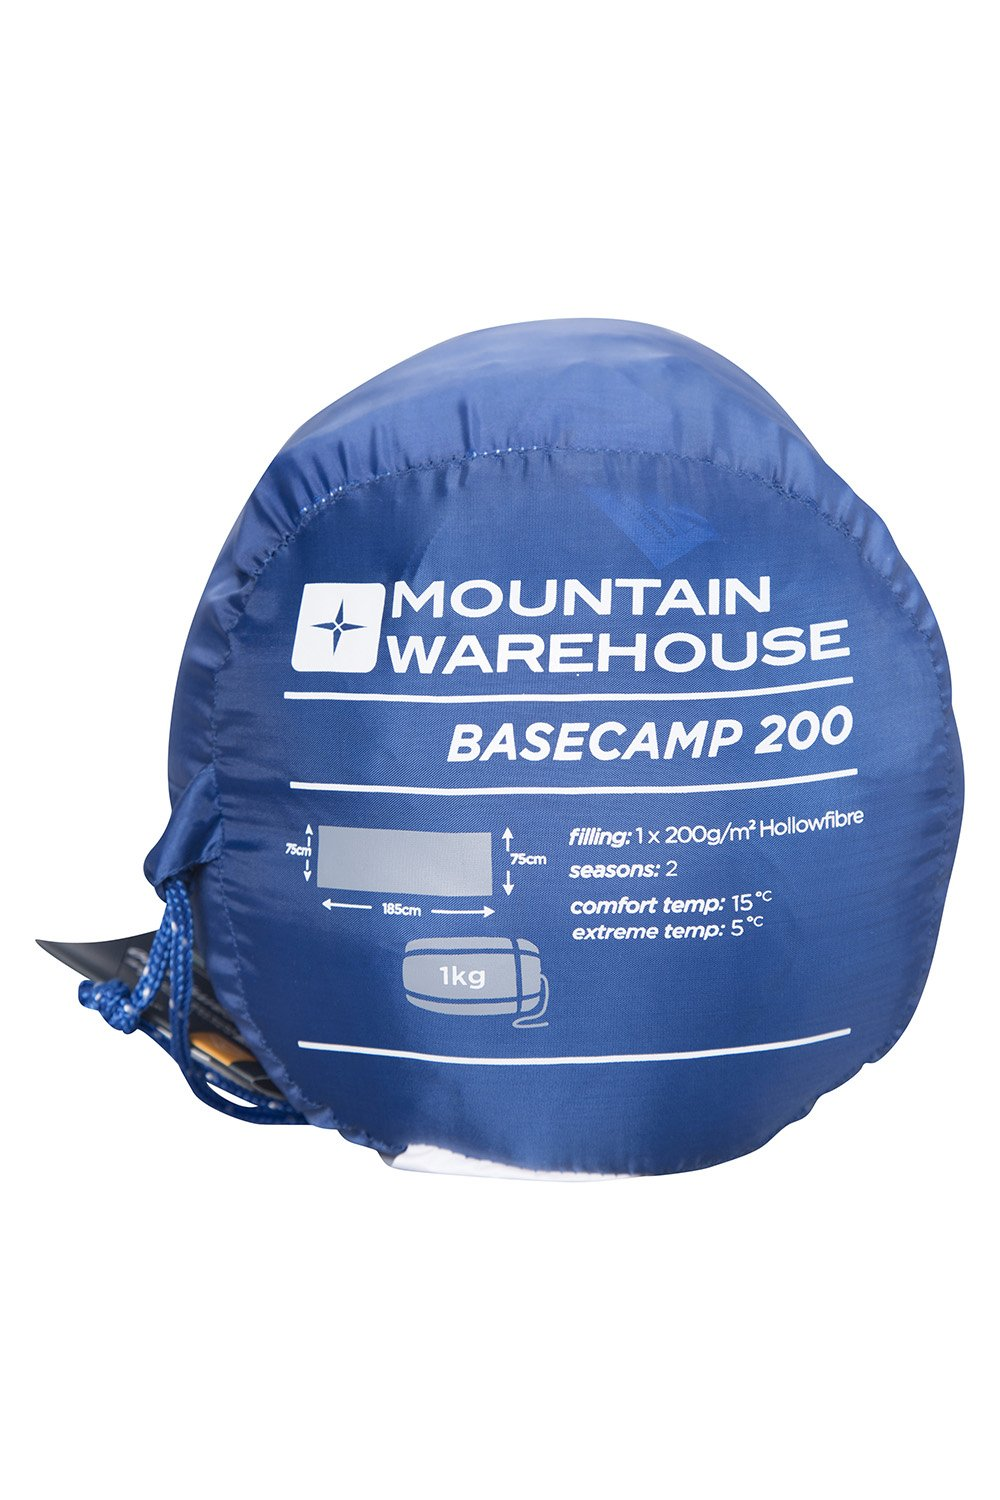 Mountain Warehouse Basecamp 200 Sleeping Bag - 2 Season Kids Camping Bag, Extreme Temperature Of 5C 1